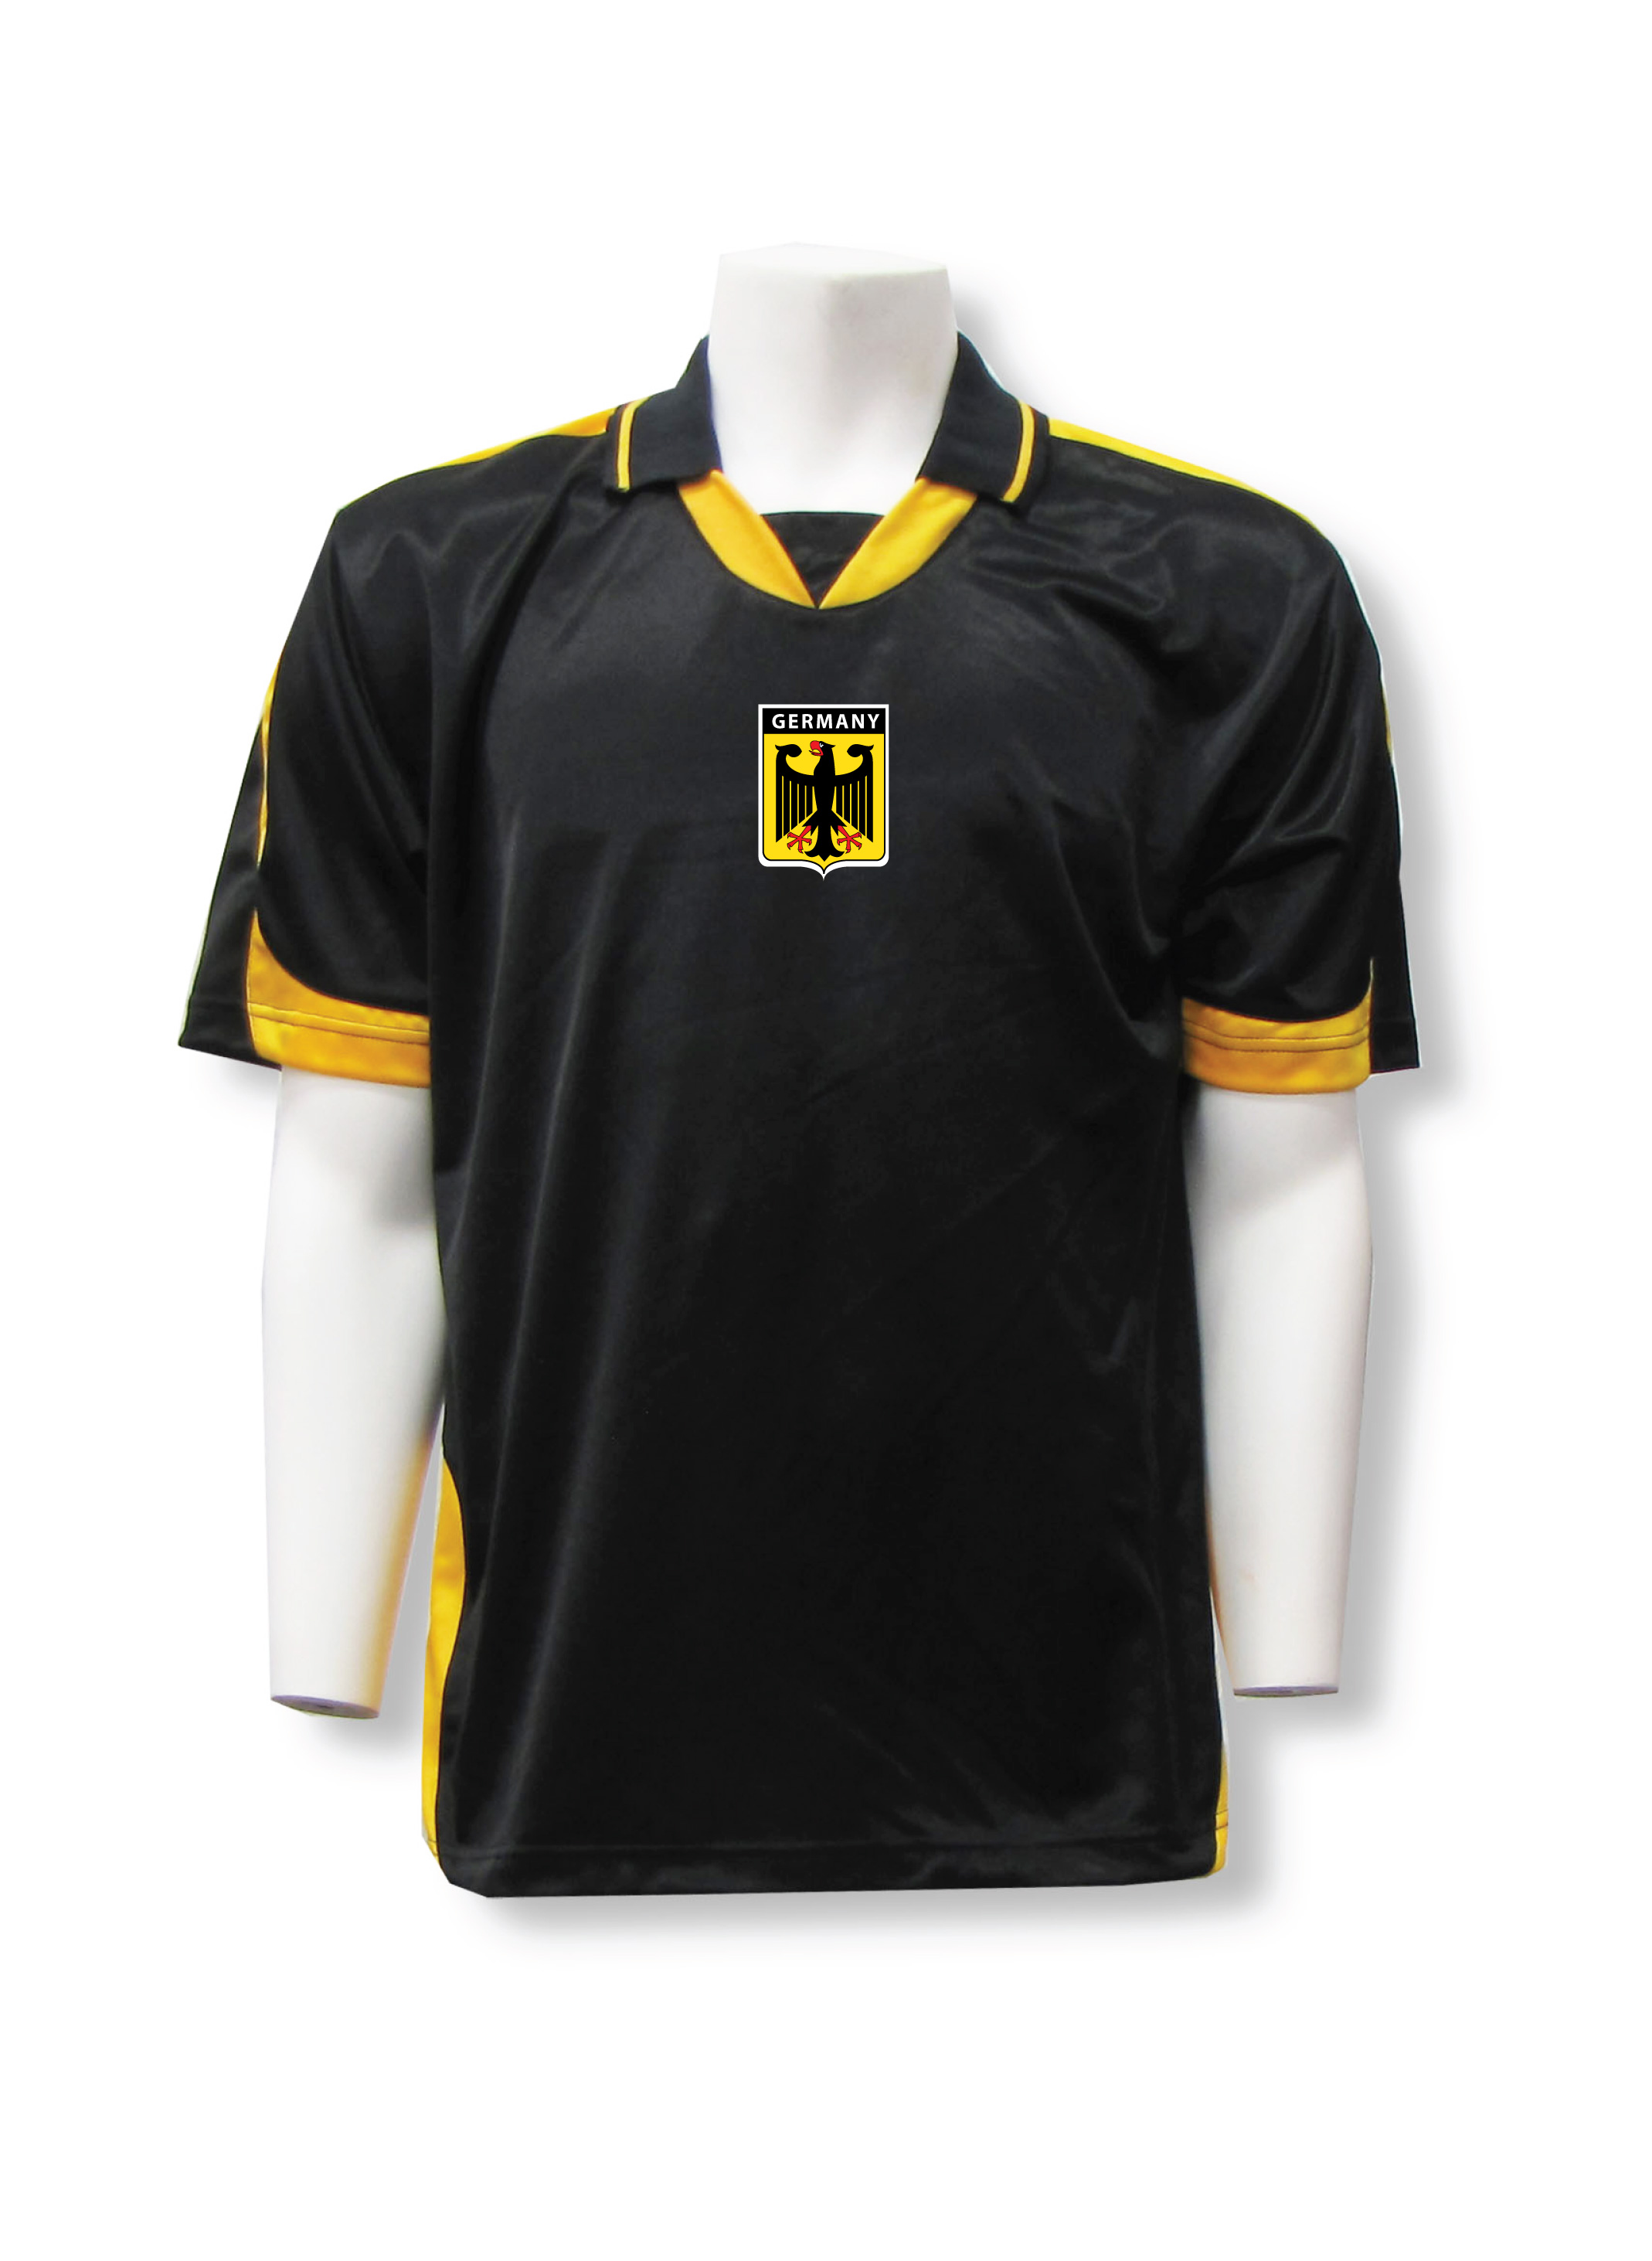 Germany soccer badge jersey in black/gold by Code Four Athletics